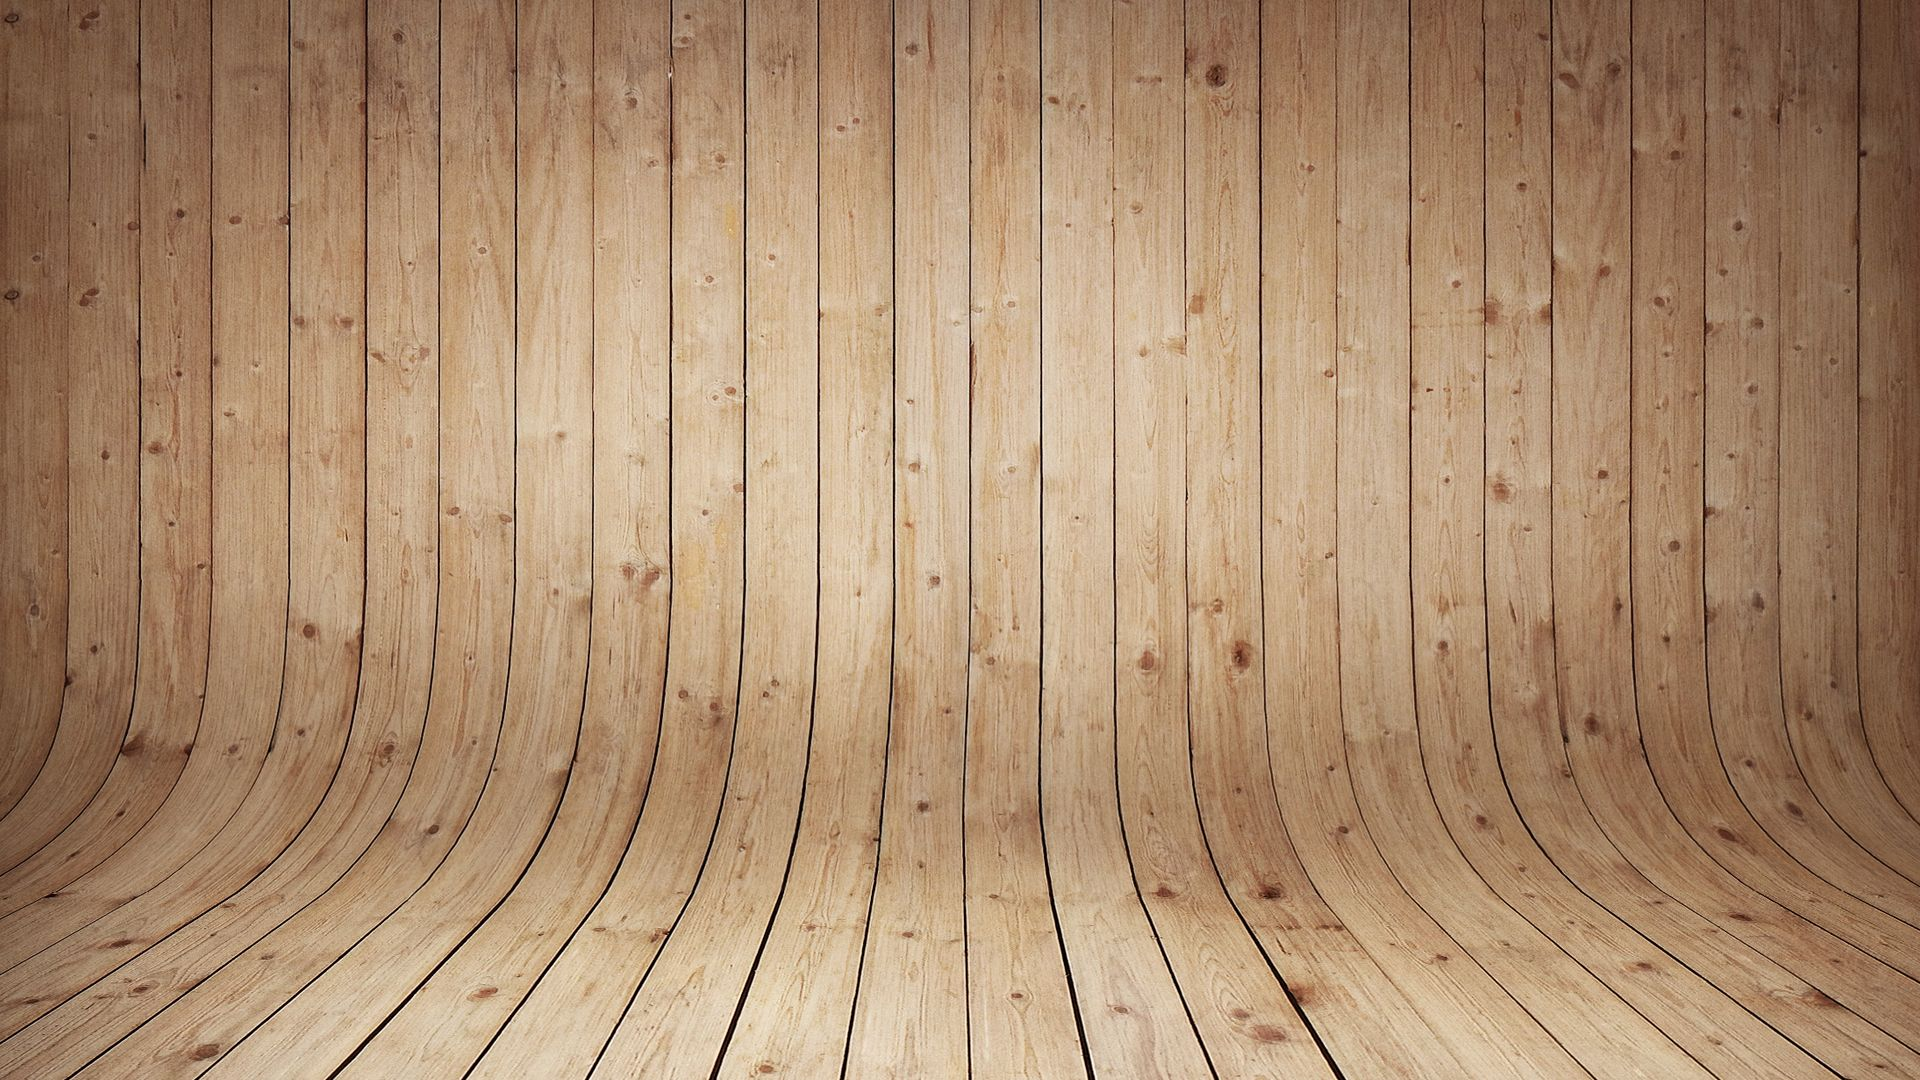 Wooden Background Hd Posted By Ryan Sellers